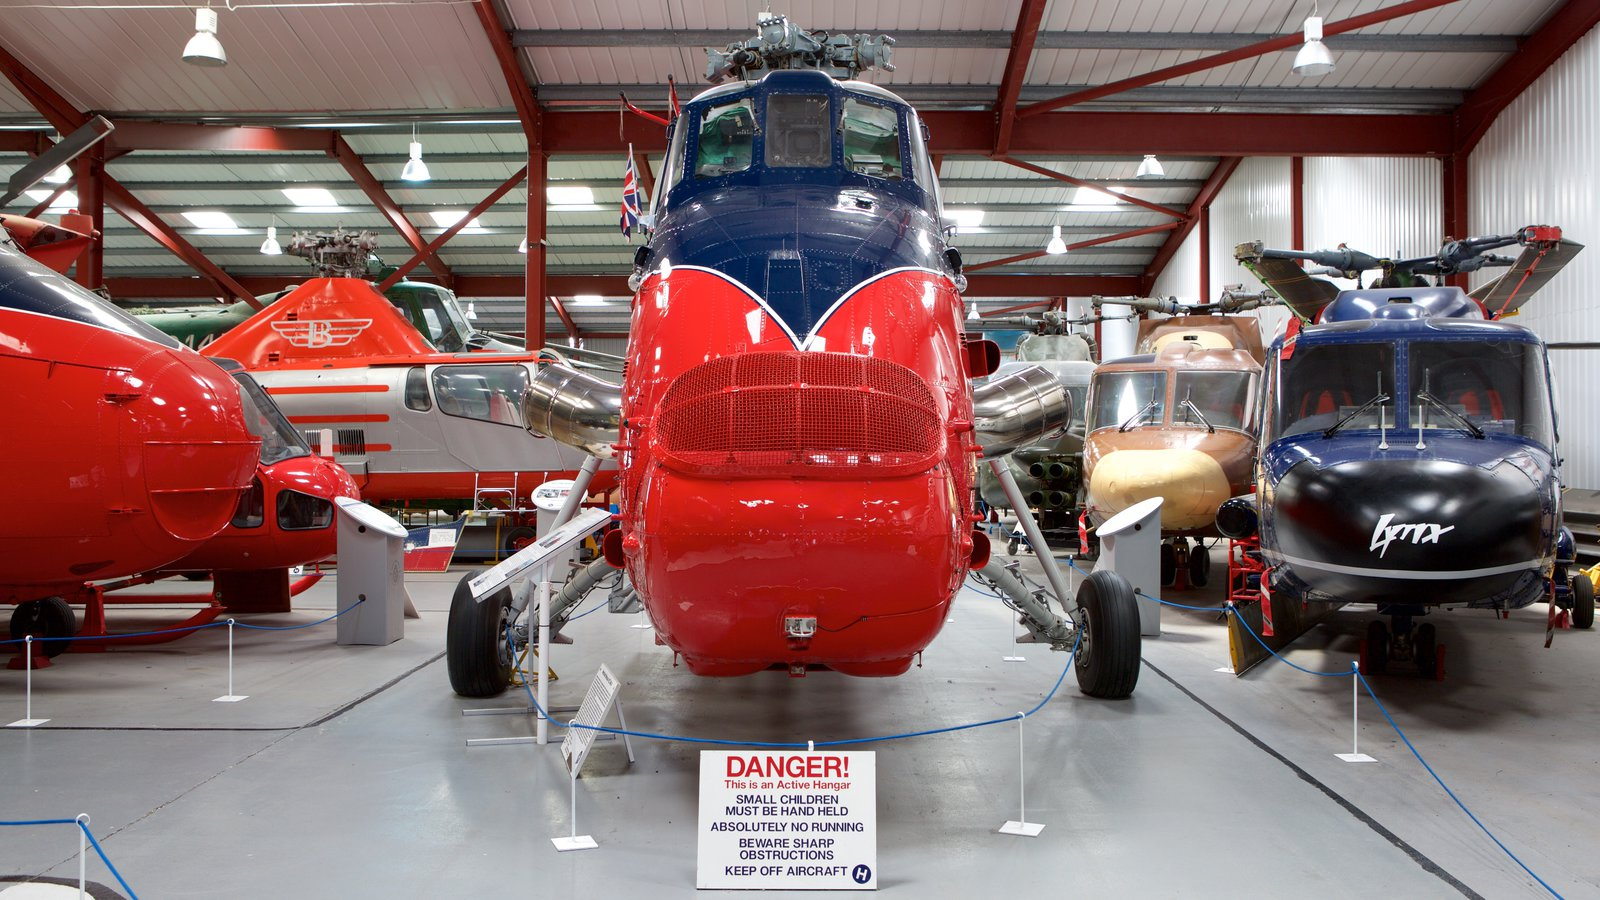 International Helicopter Museum which includes interior views and aircraft